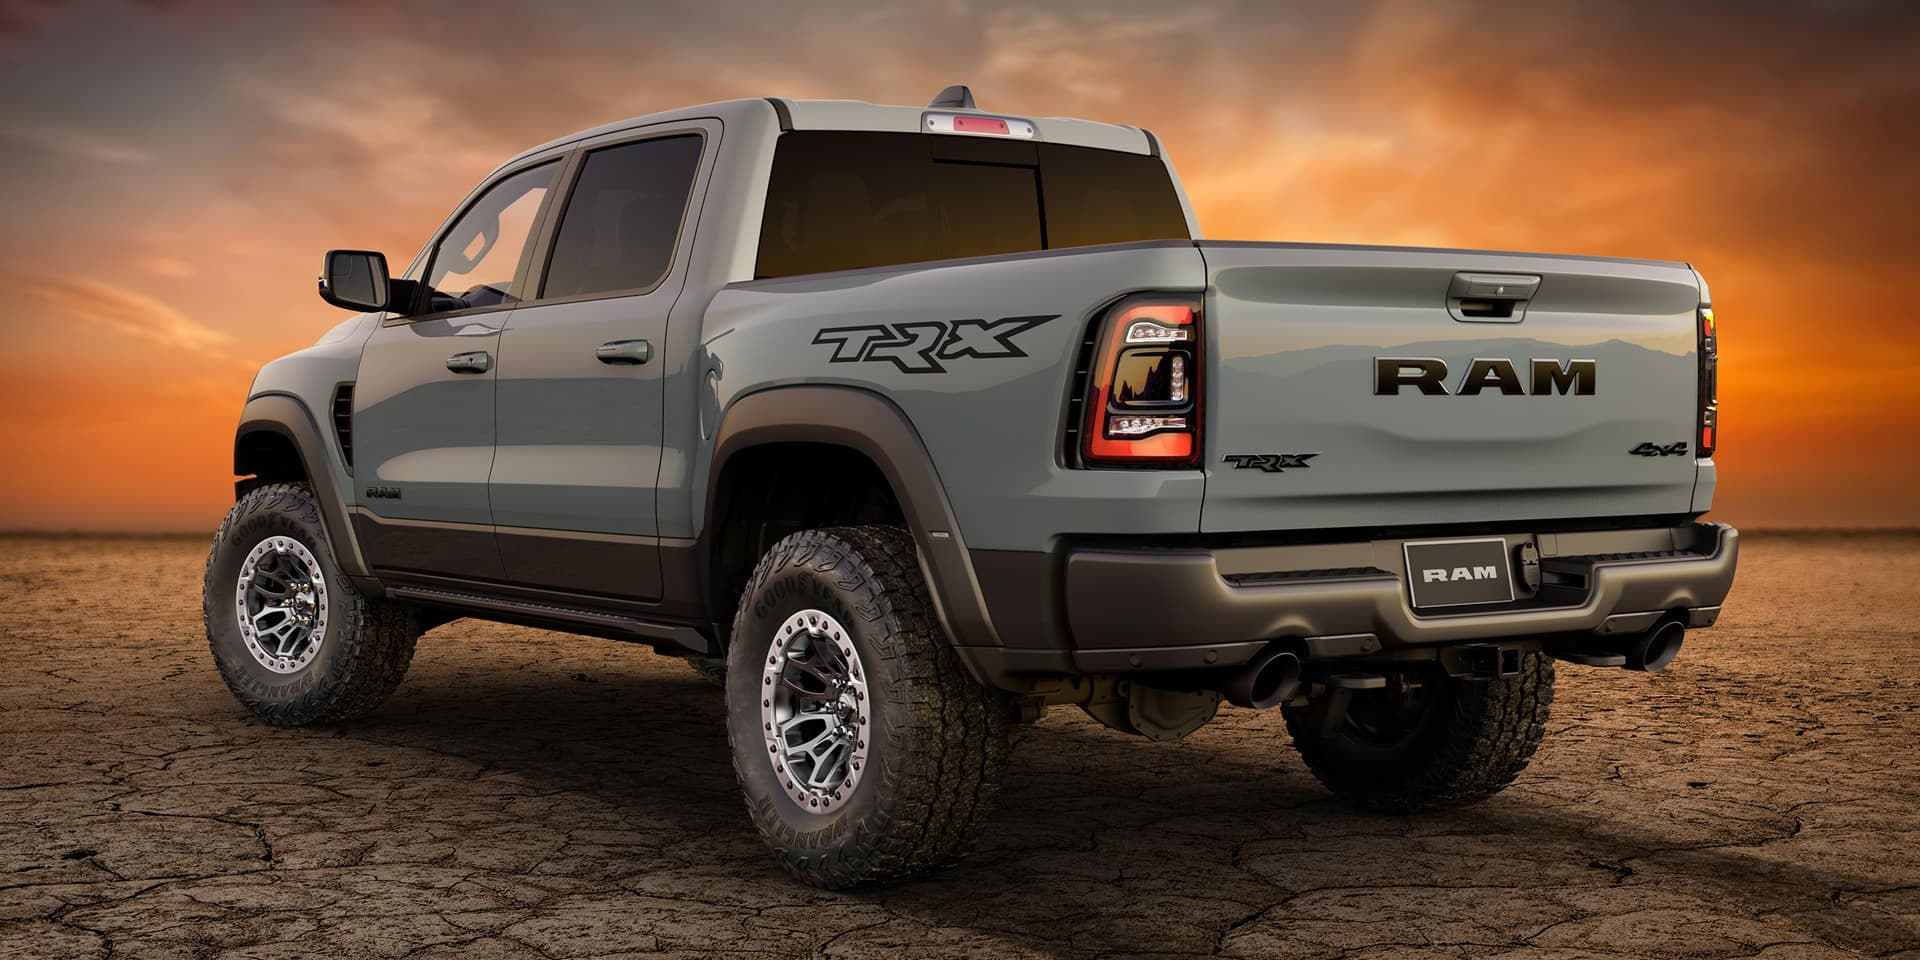 2021 RAM TRX for sale in Ottawa